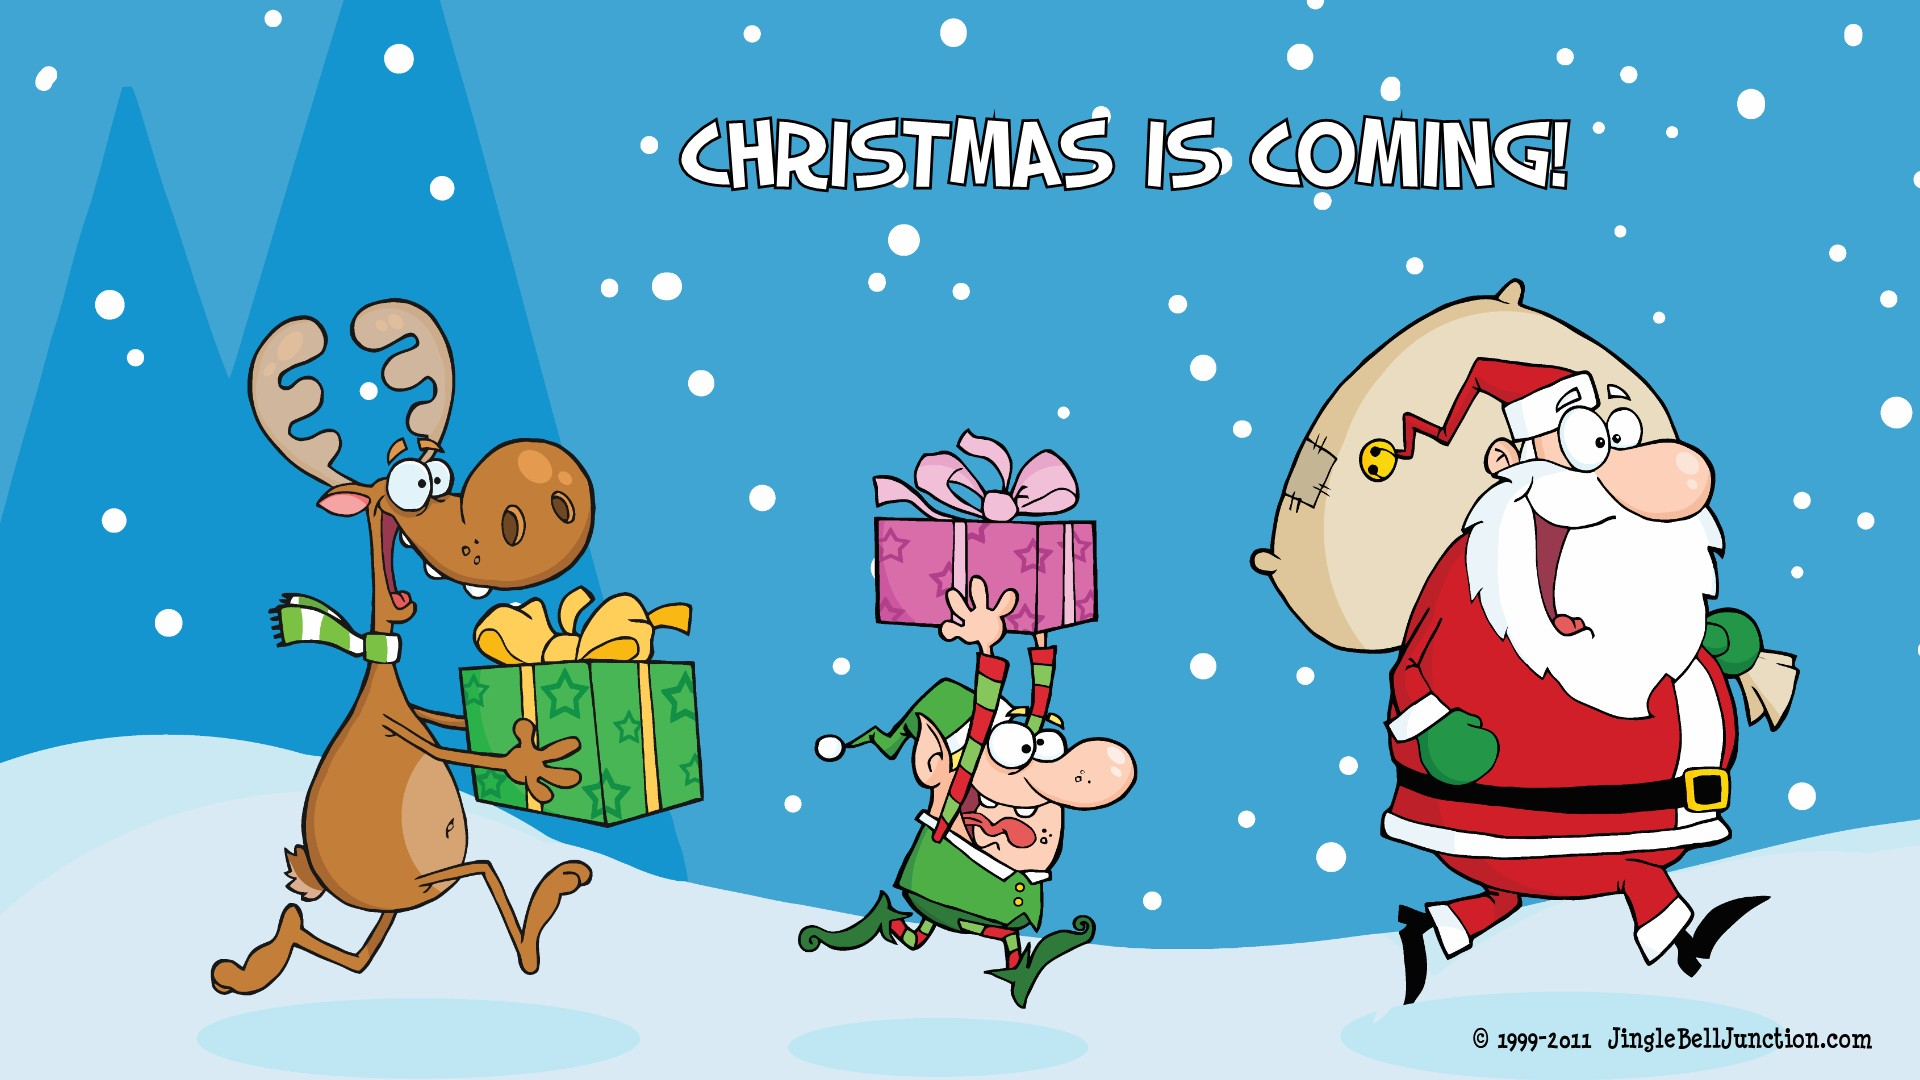 Cute Christmas Reindeer Wallpaper Wallpapers Desktop 1920x1080